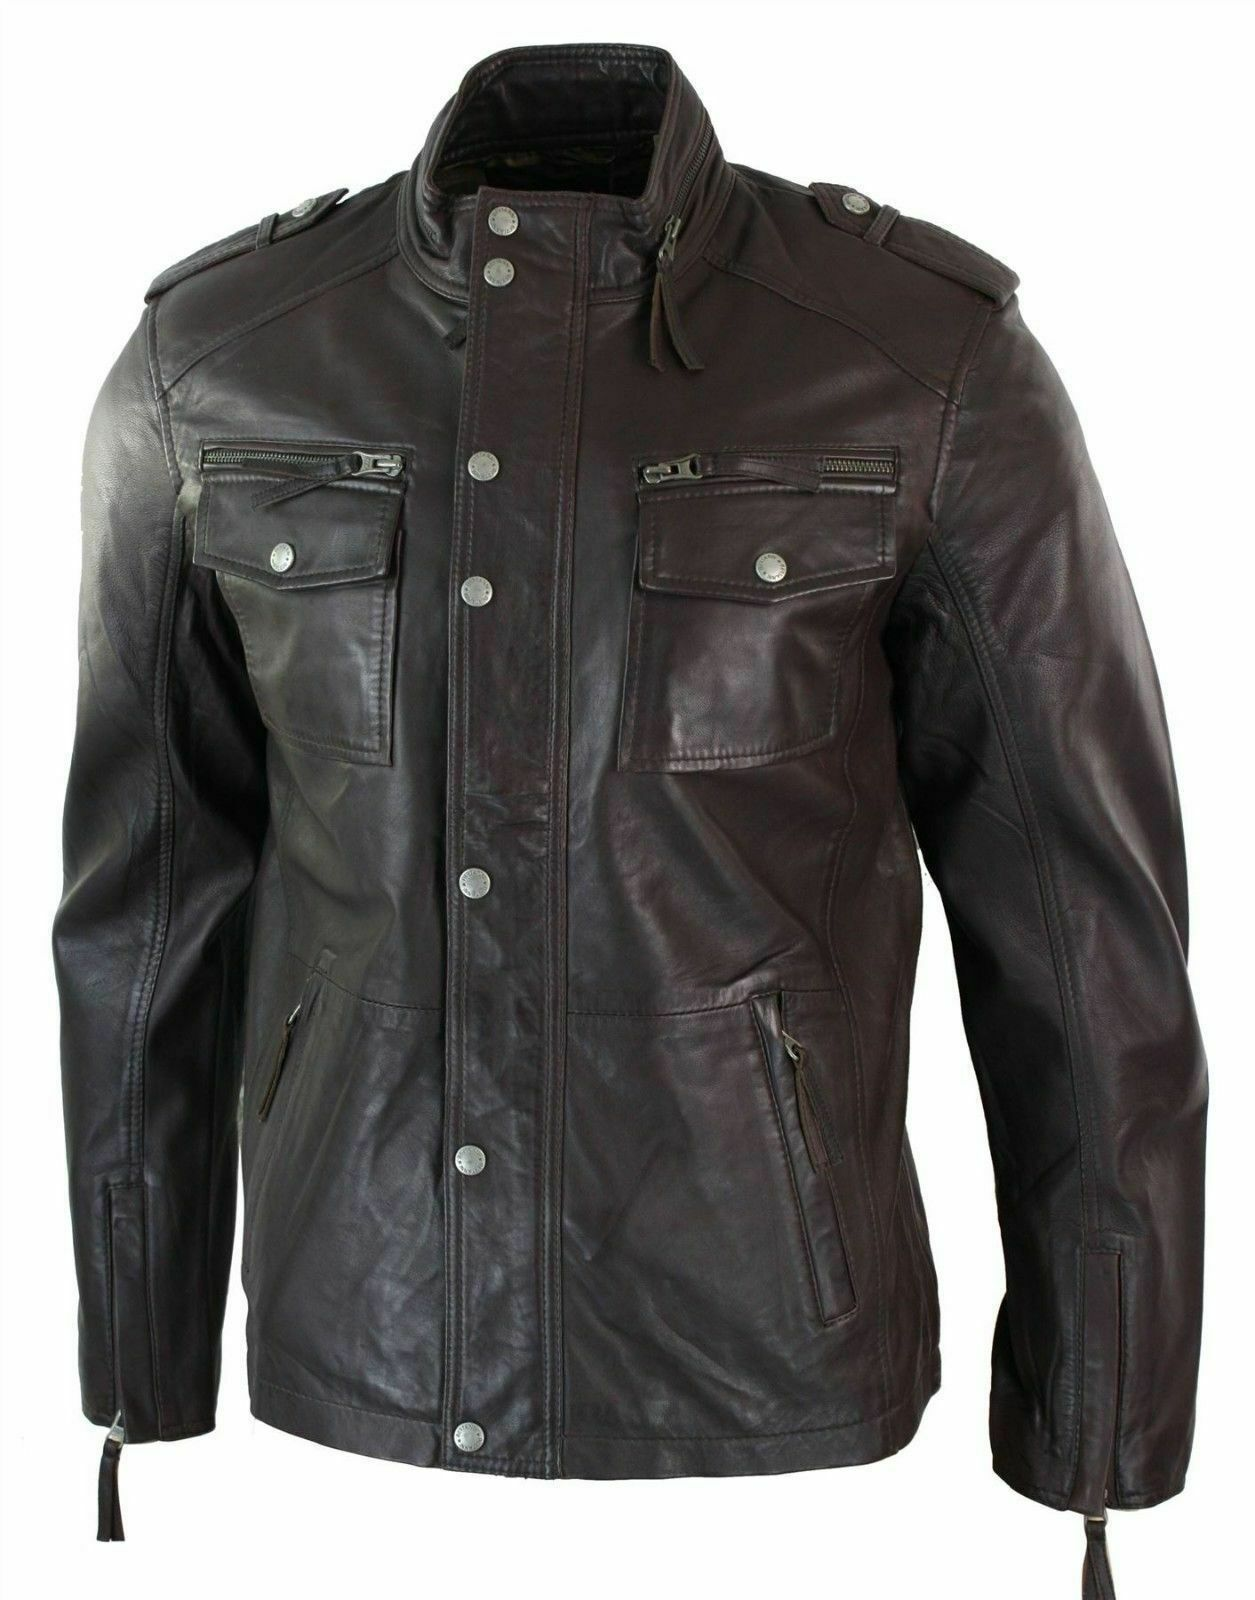 Mens Leather Jacket Fitted Bomber Pilot Flying Style Bl